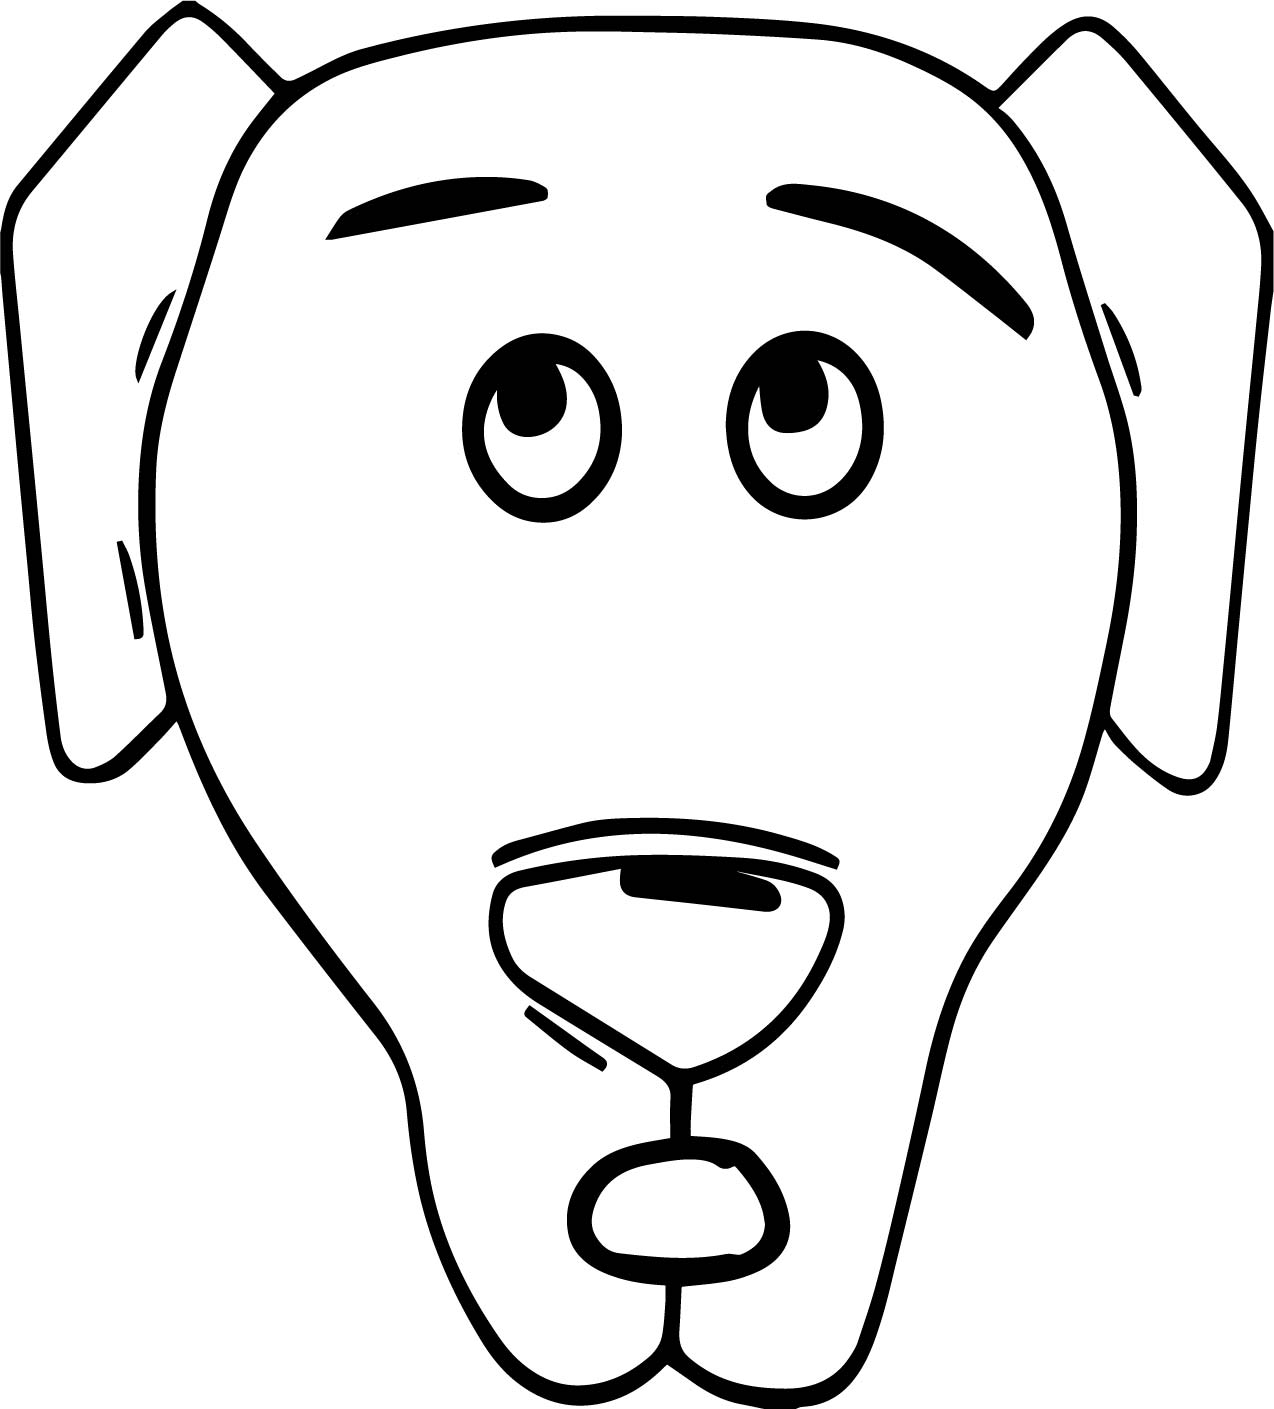 Dog Face Template Pictures To Pin On Pinterest